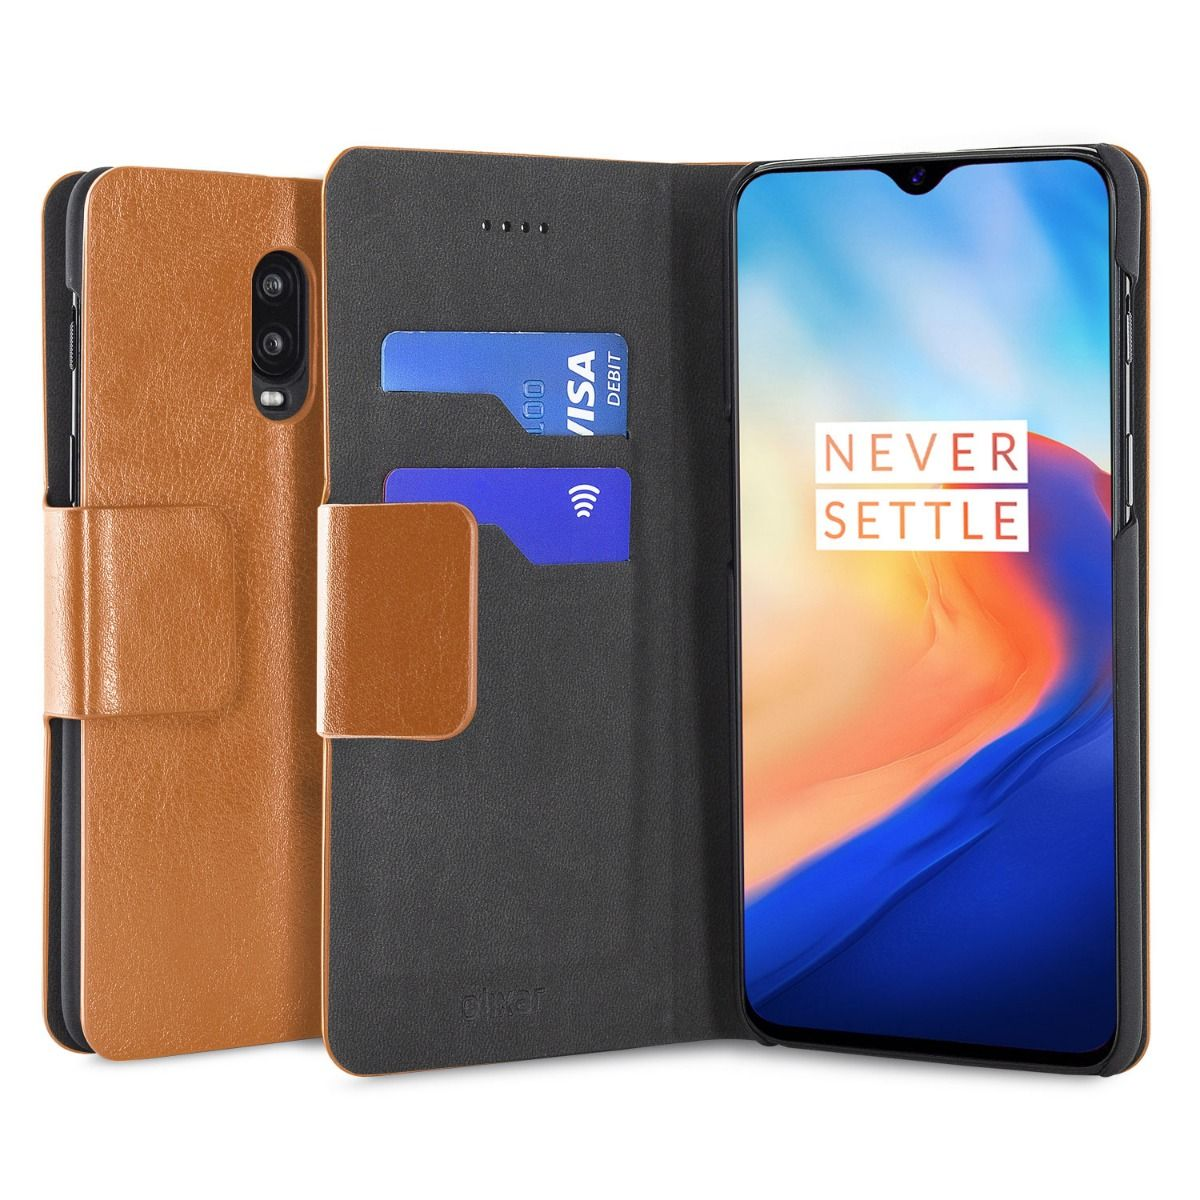 OnePlus-6T-Olixar-Leather-style-wallet-stand-case